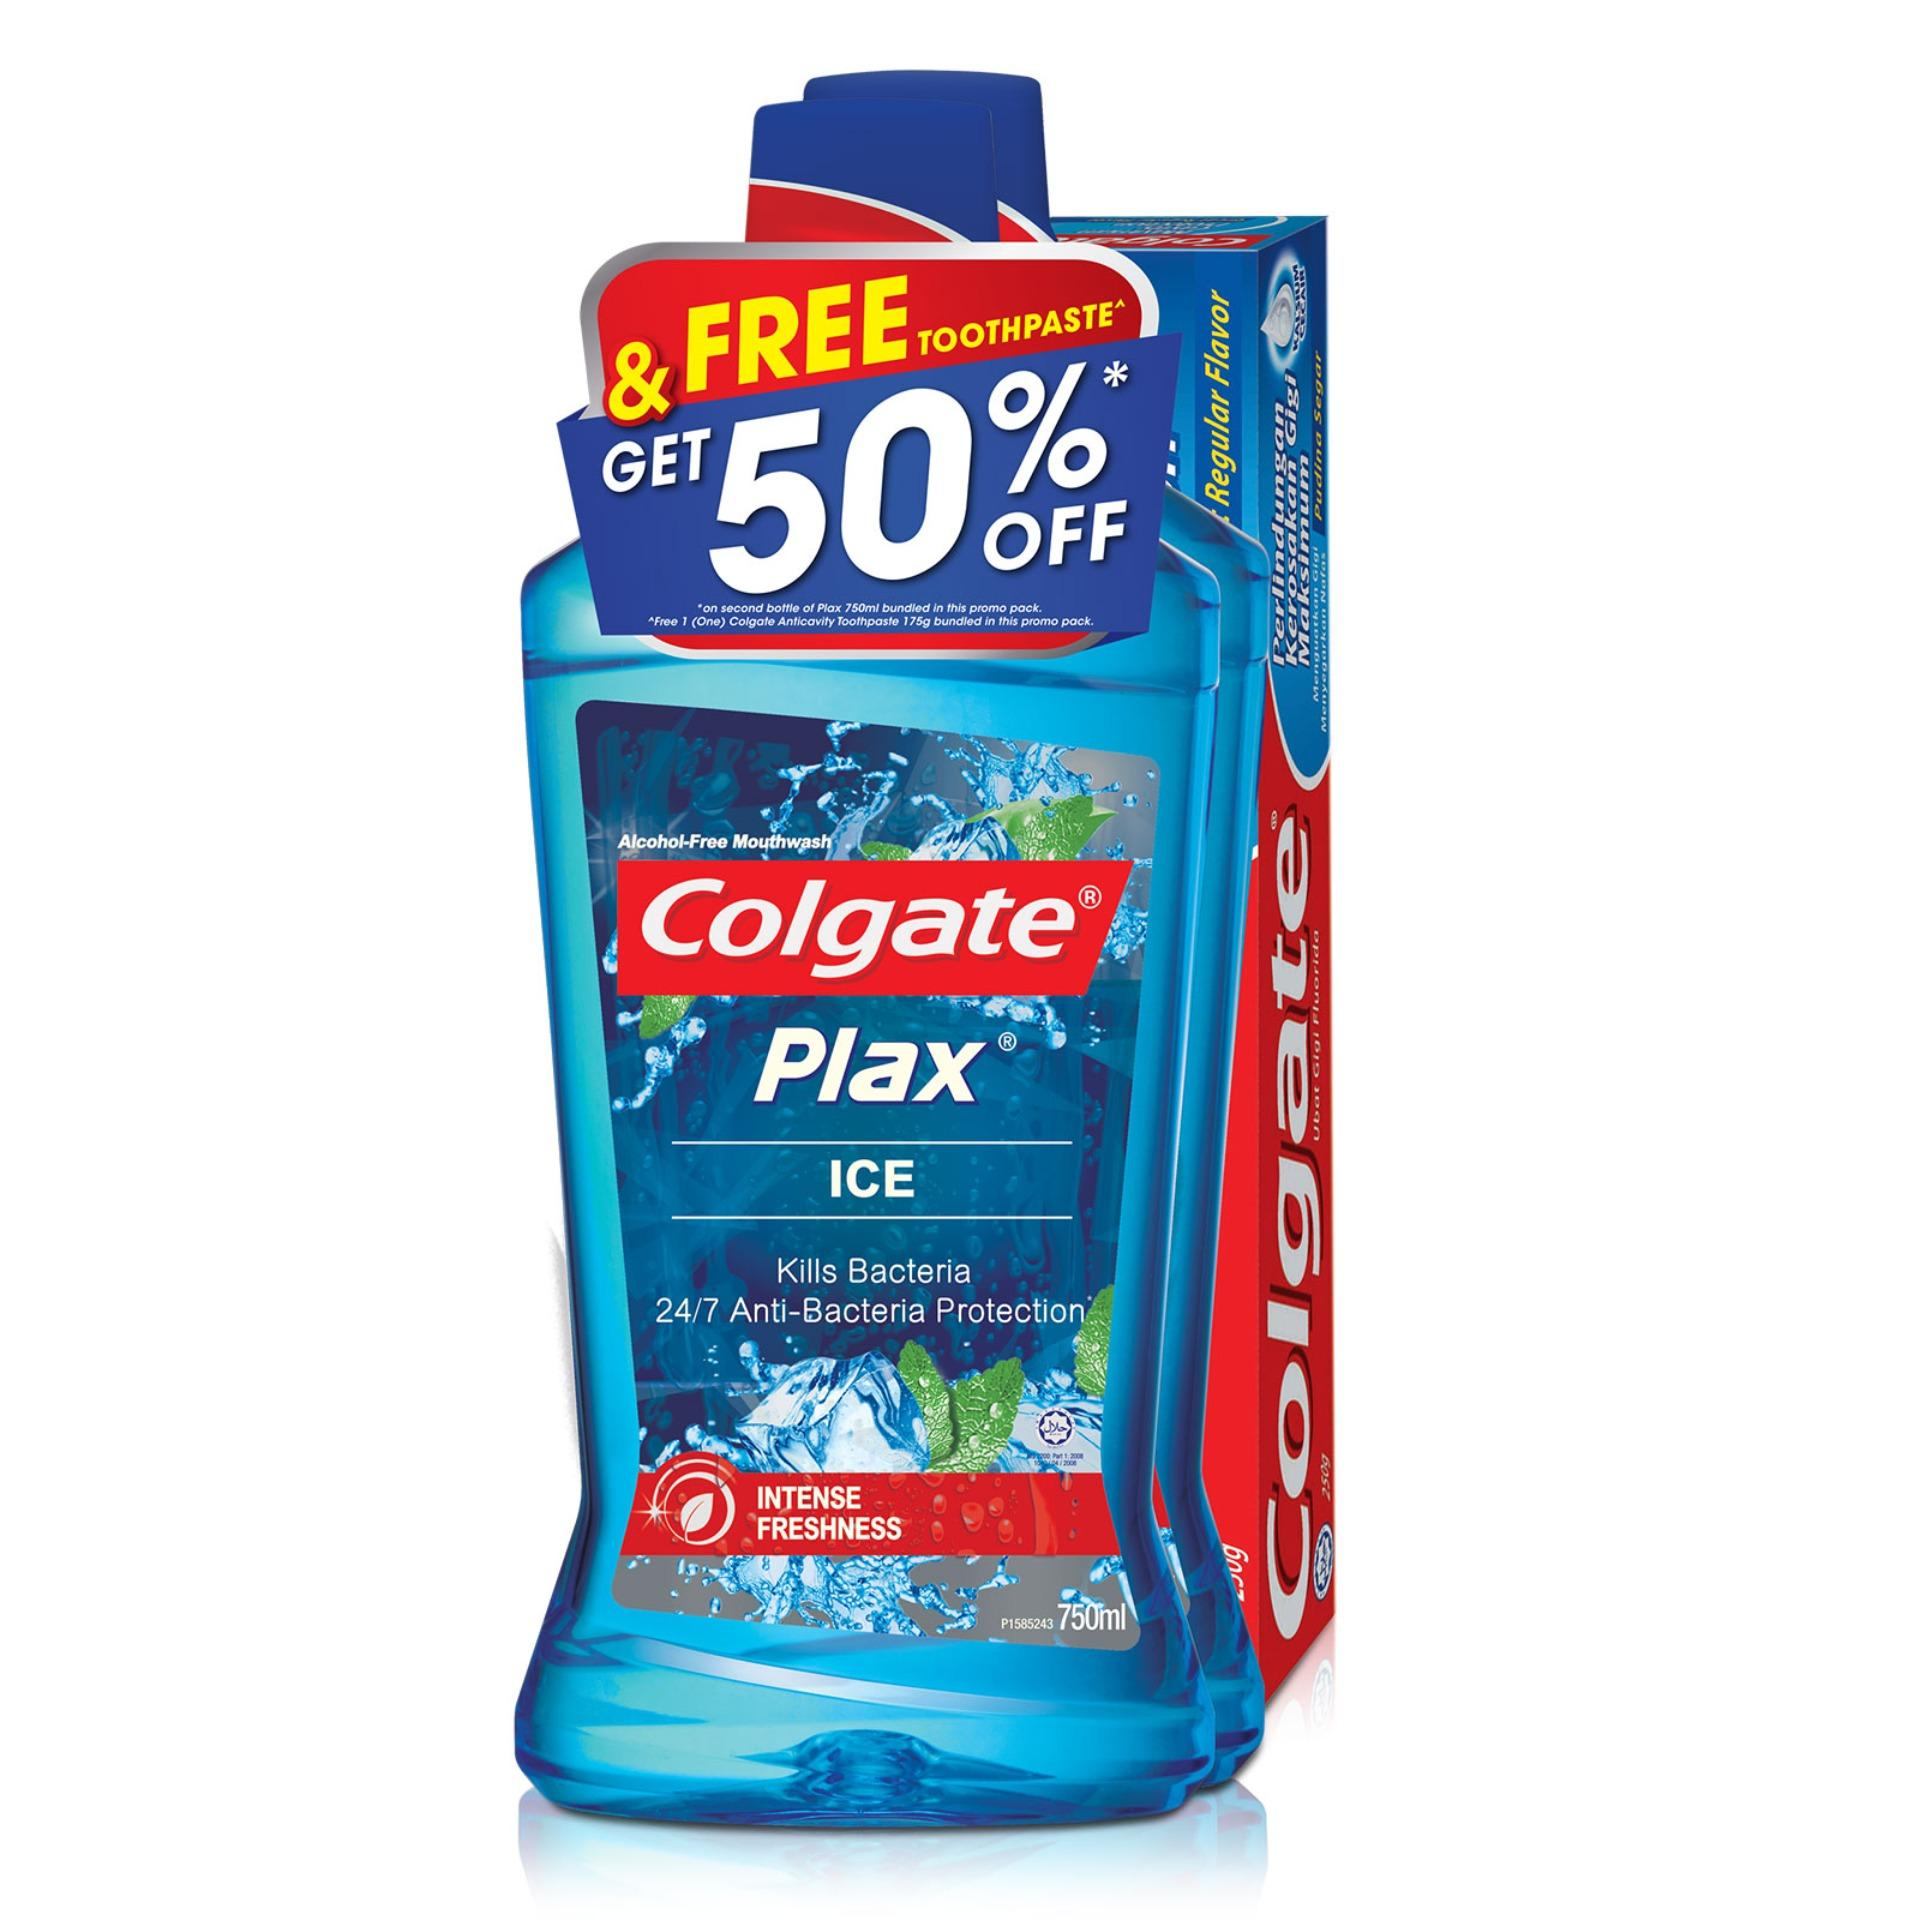 Promotions Catalogs Colgate Slim Soft Advanced Zig Zag Charcoal 1pc Plax Ice Mouthwash 750ml Twinpack Free 175g Toothpaste